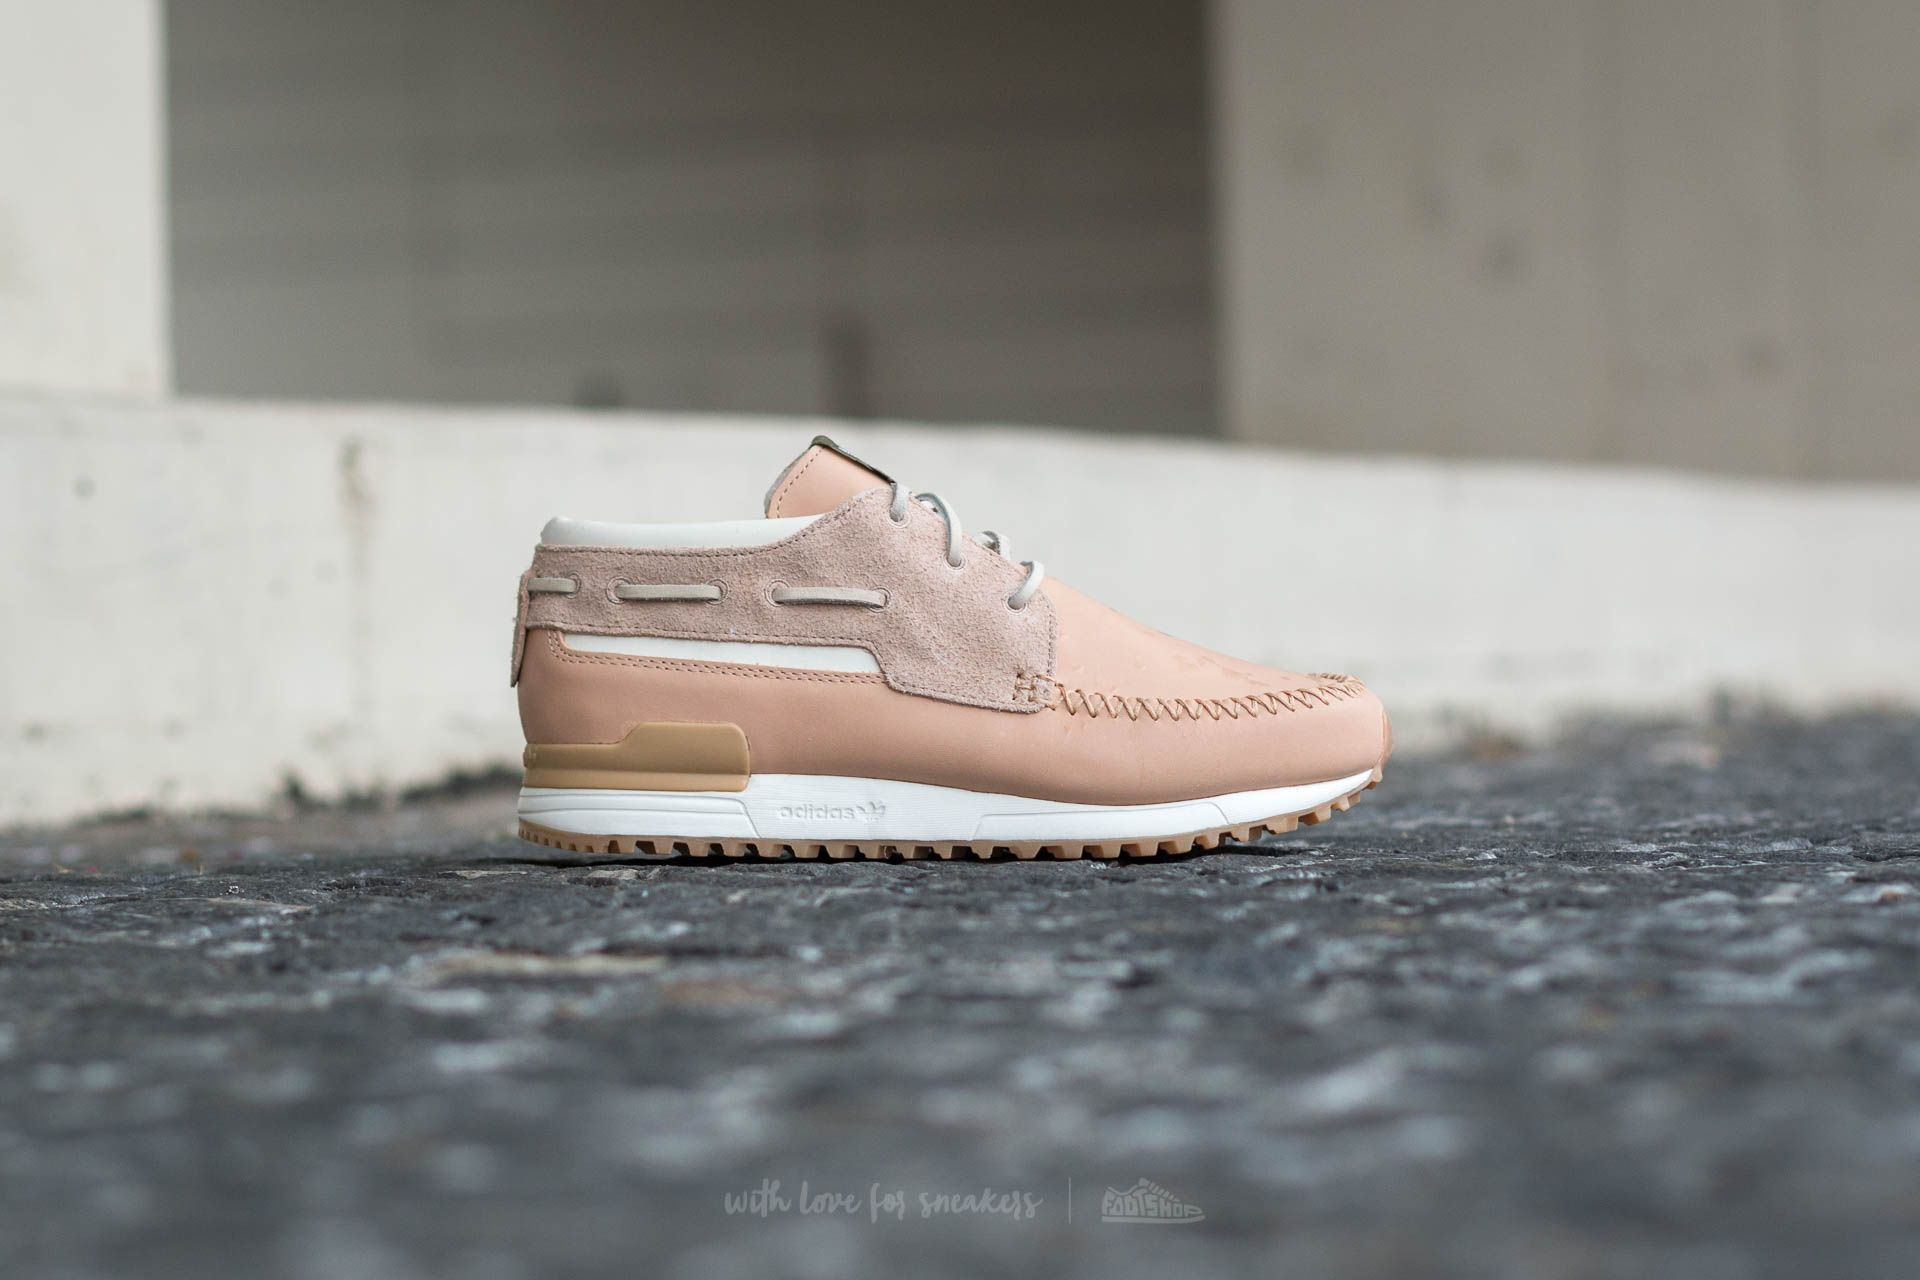 ... wholesale adidas consortium x end. zx 700 boat end tan tan white at a  5147b 5ef6806a5903